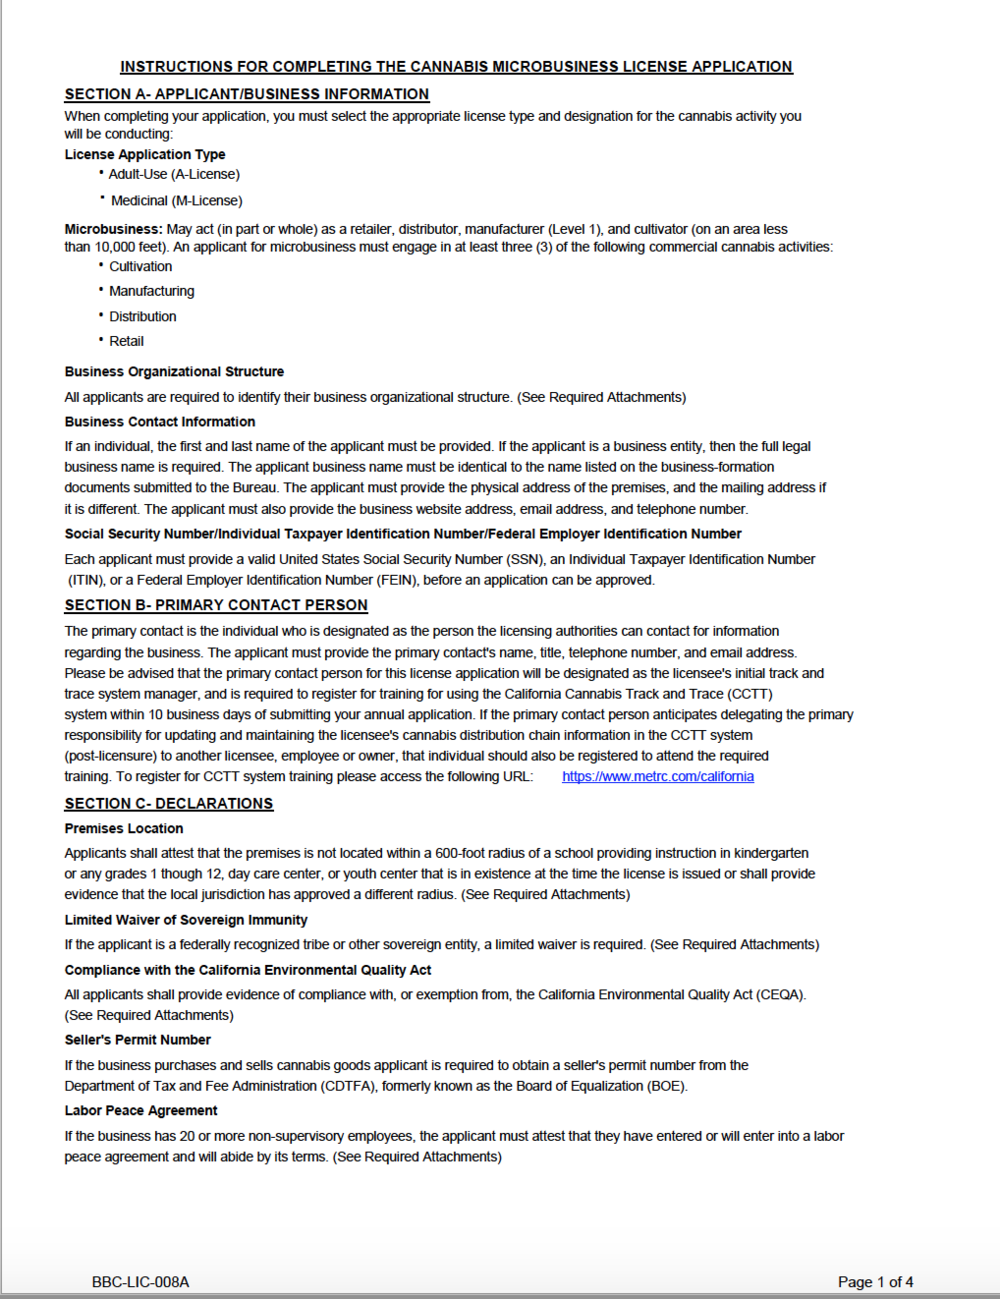 Microbusiness License - Instructions.png